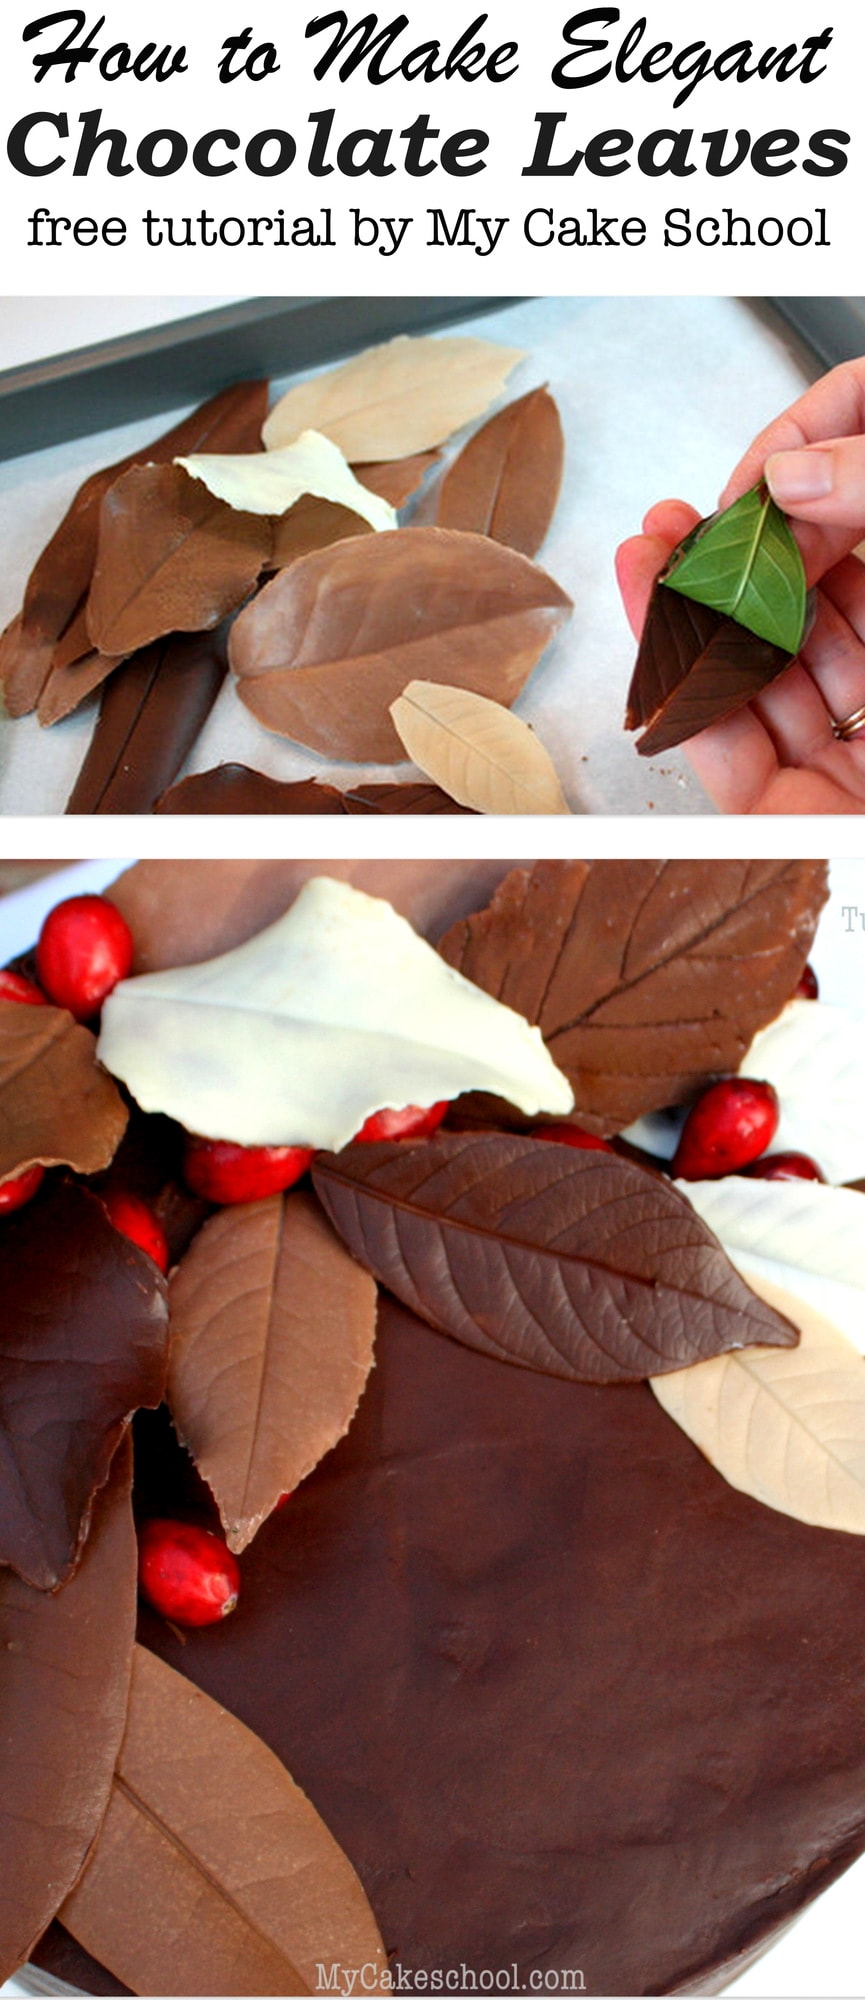 Learn how to make elegant chocolate leaves in this free cake decorating tutorial by MyCakeSchool.com! This is the perfect cake decoration for your fall and Thanksgiving cakes and cupcakes!